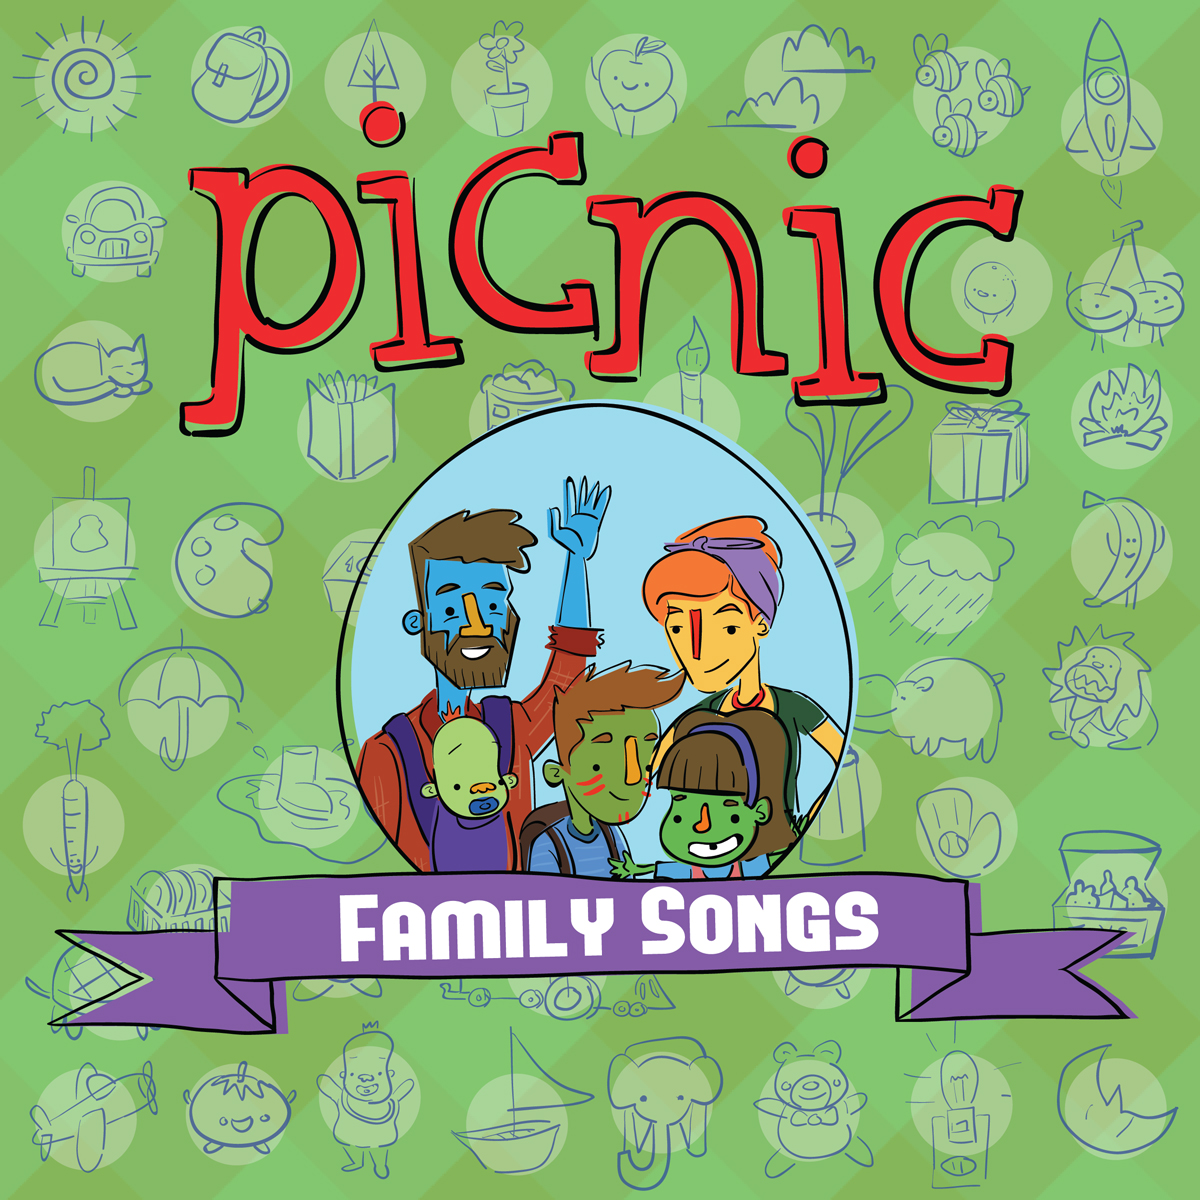 family songs by picnic